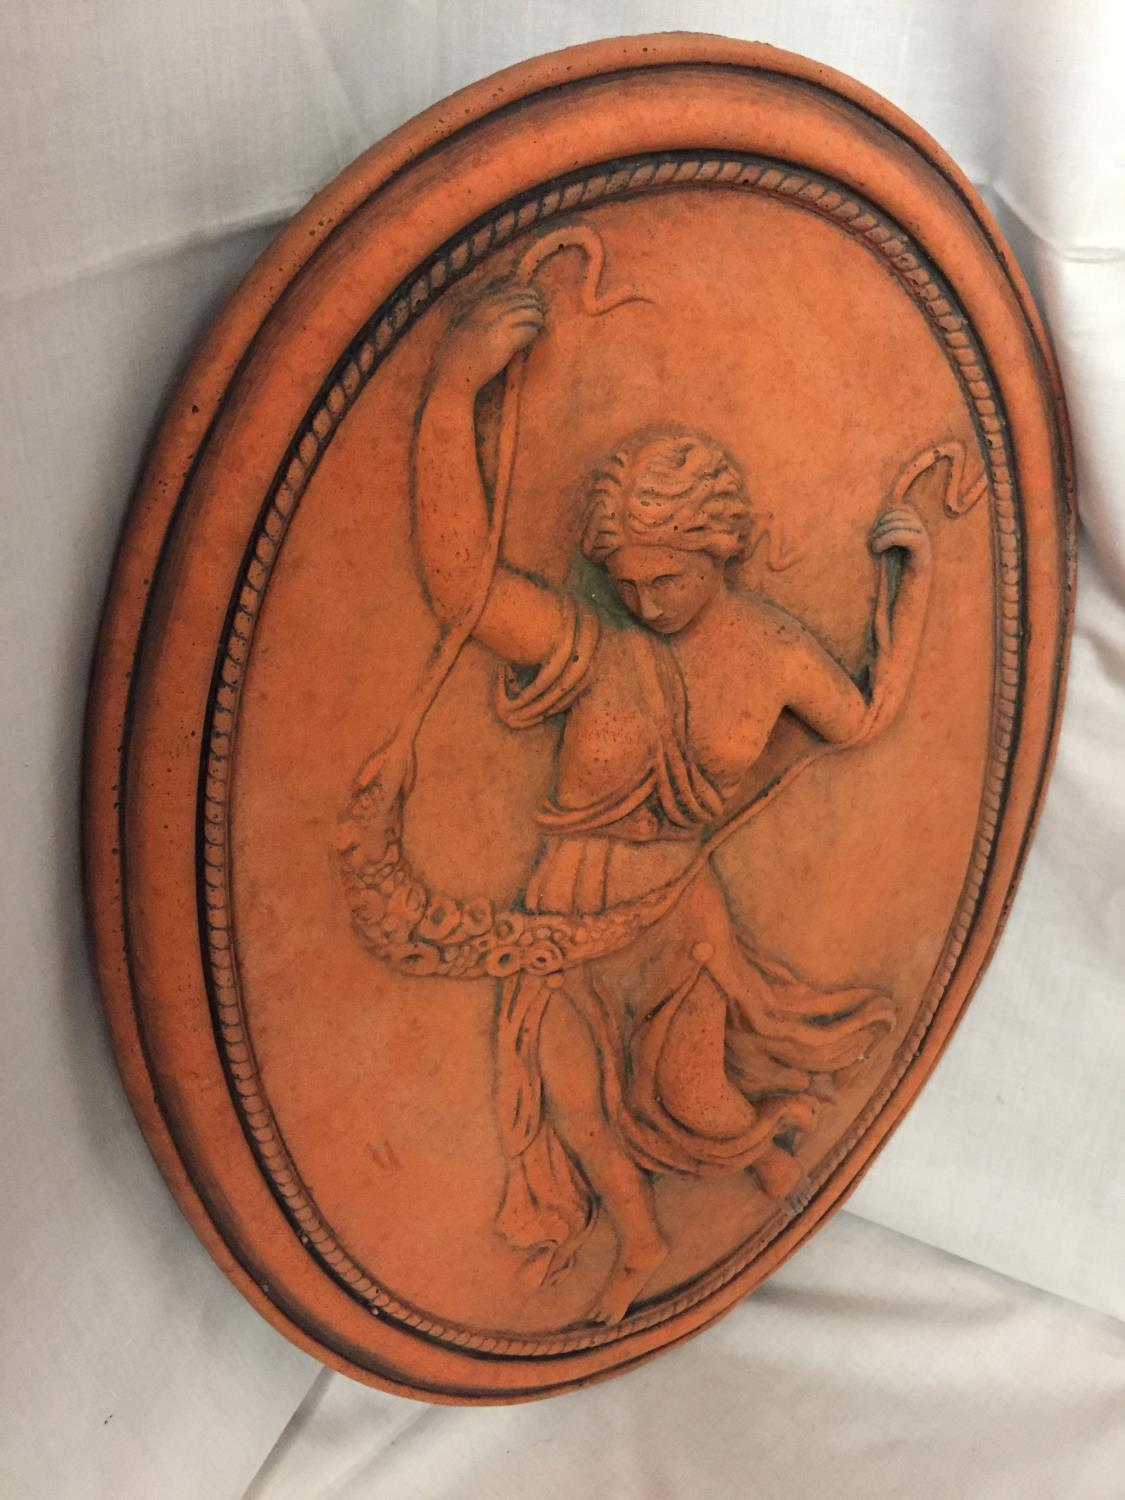 A TERRACOTTA PLAQUE OF A ROMAN SOLDIER - Image 2 of 2